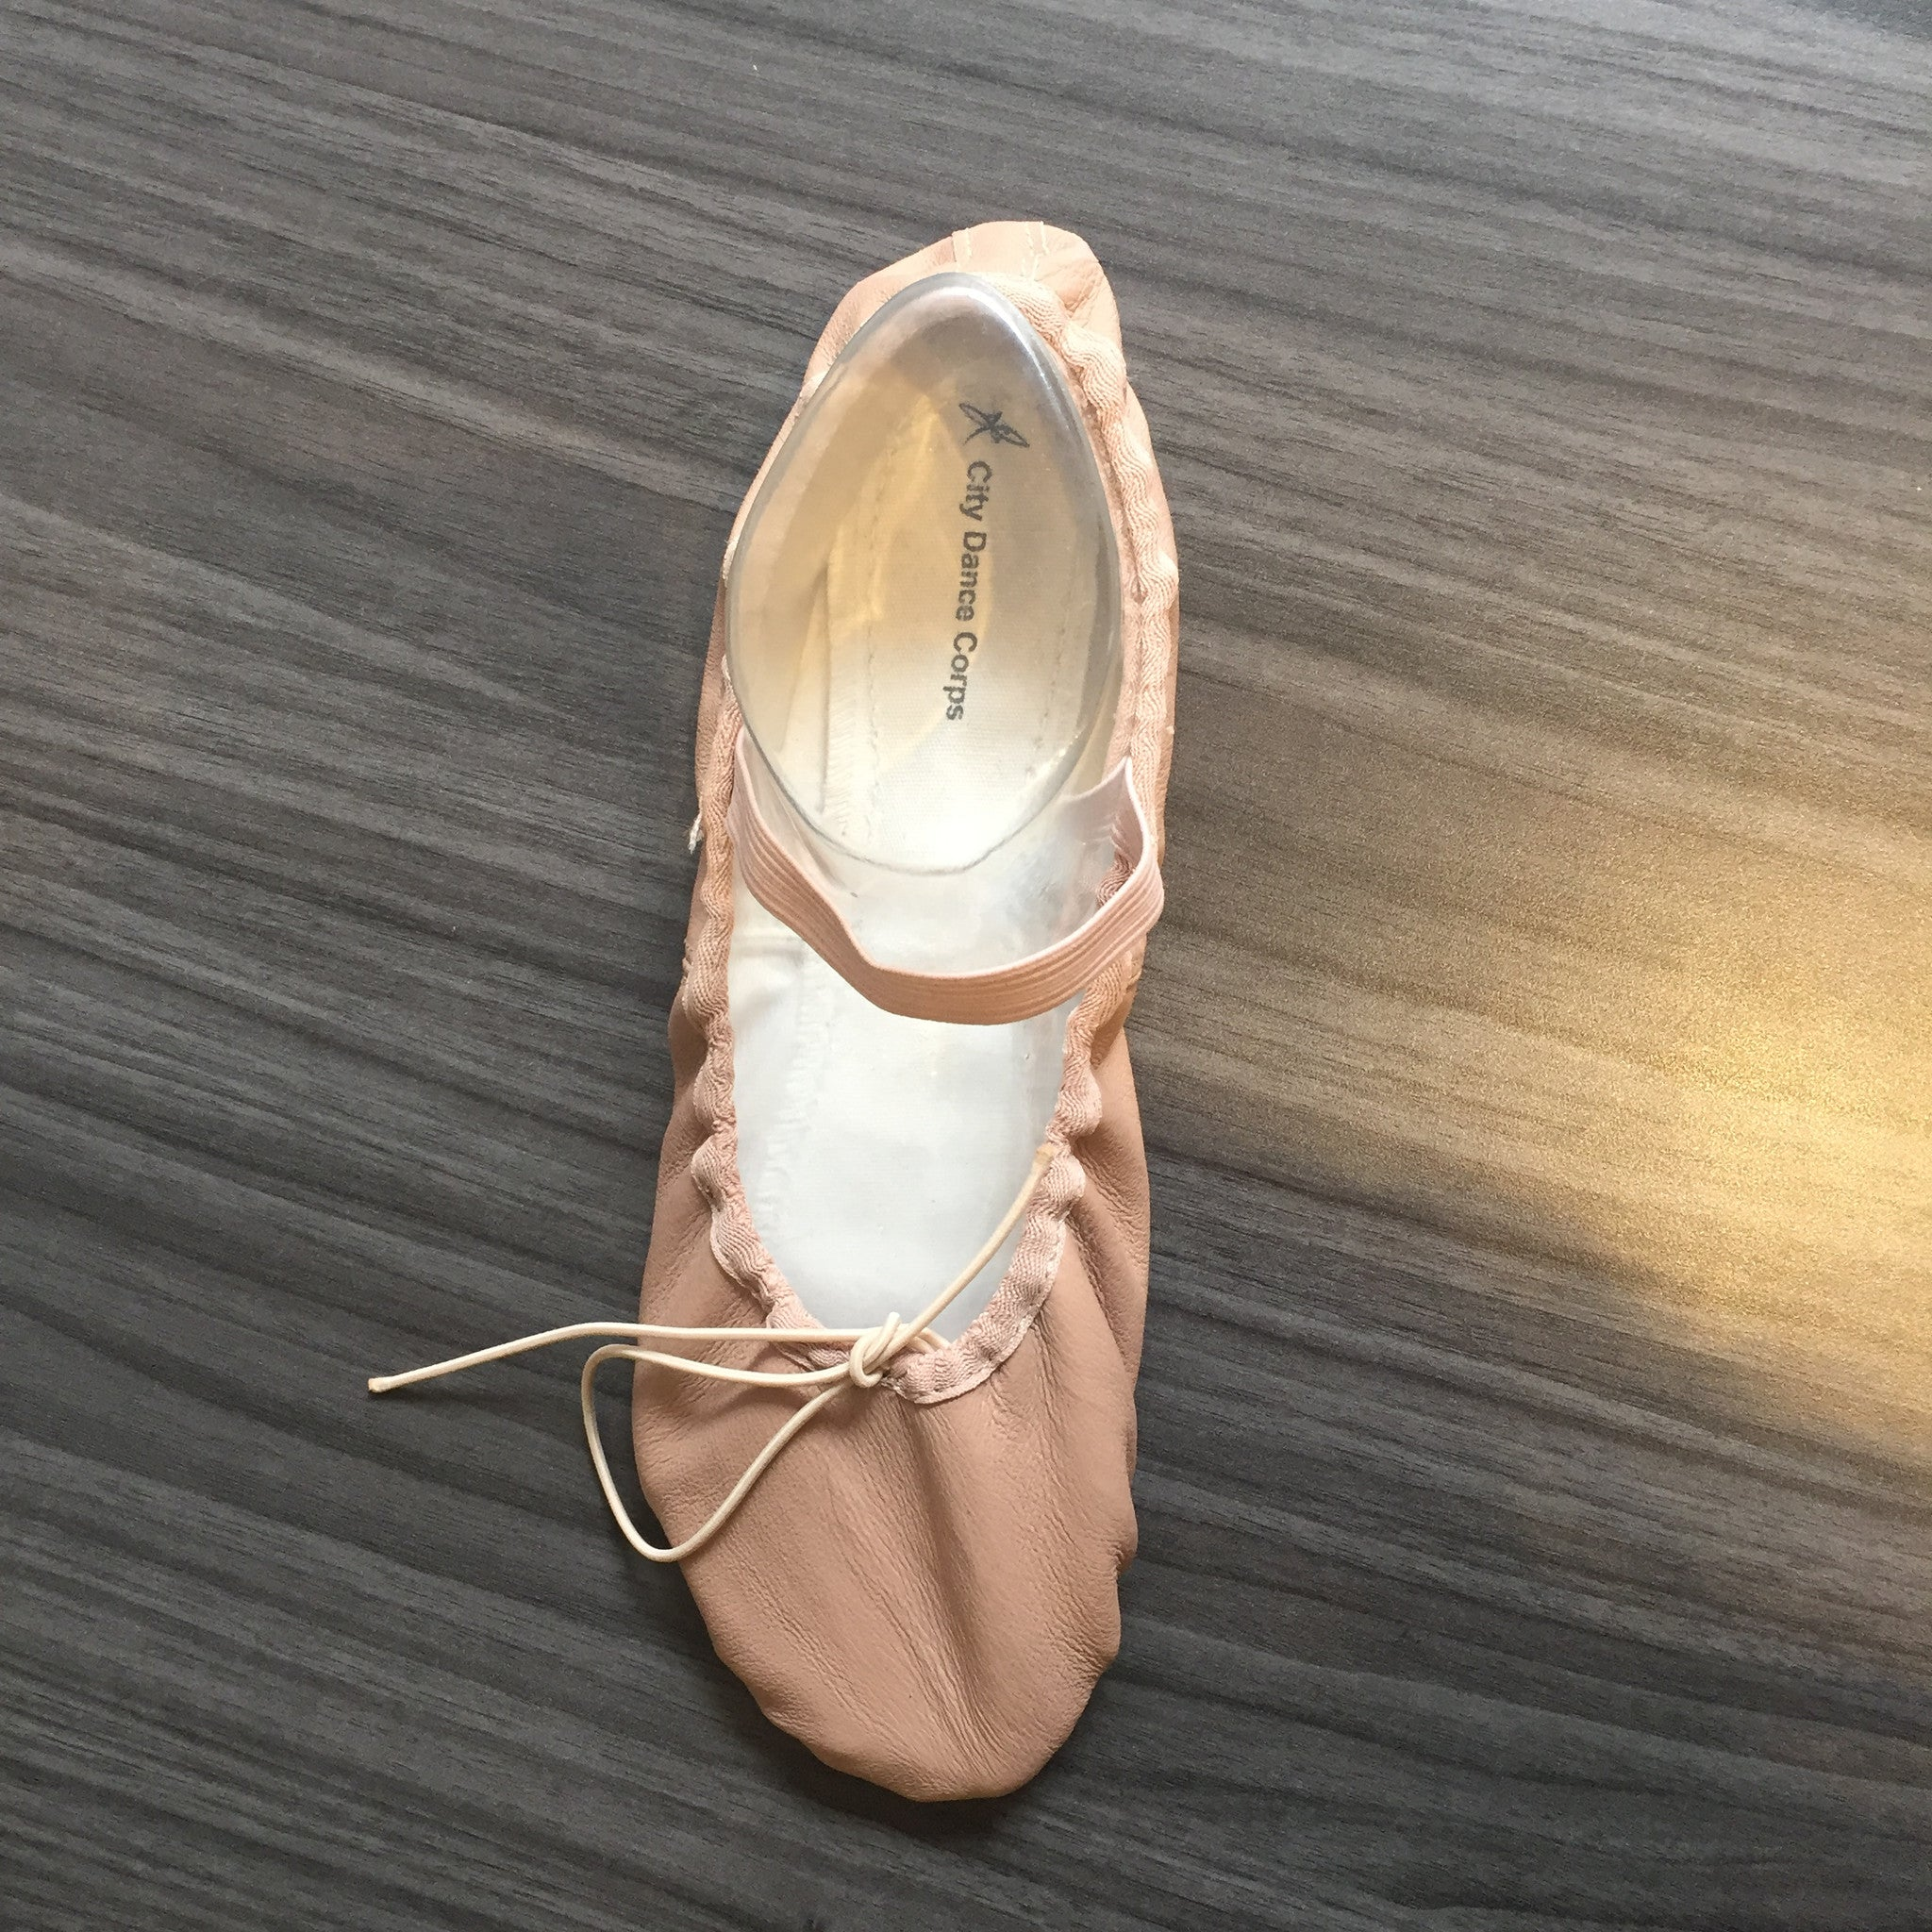 Youth Leather Ballet Slipper Full Sole